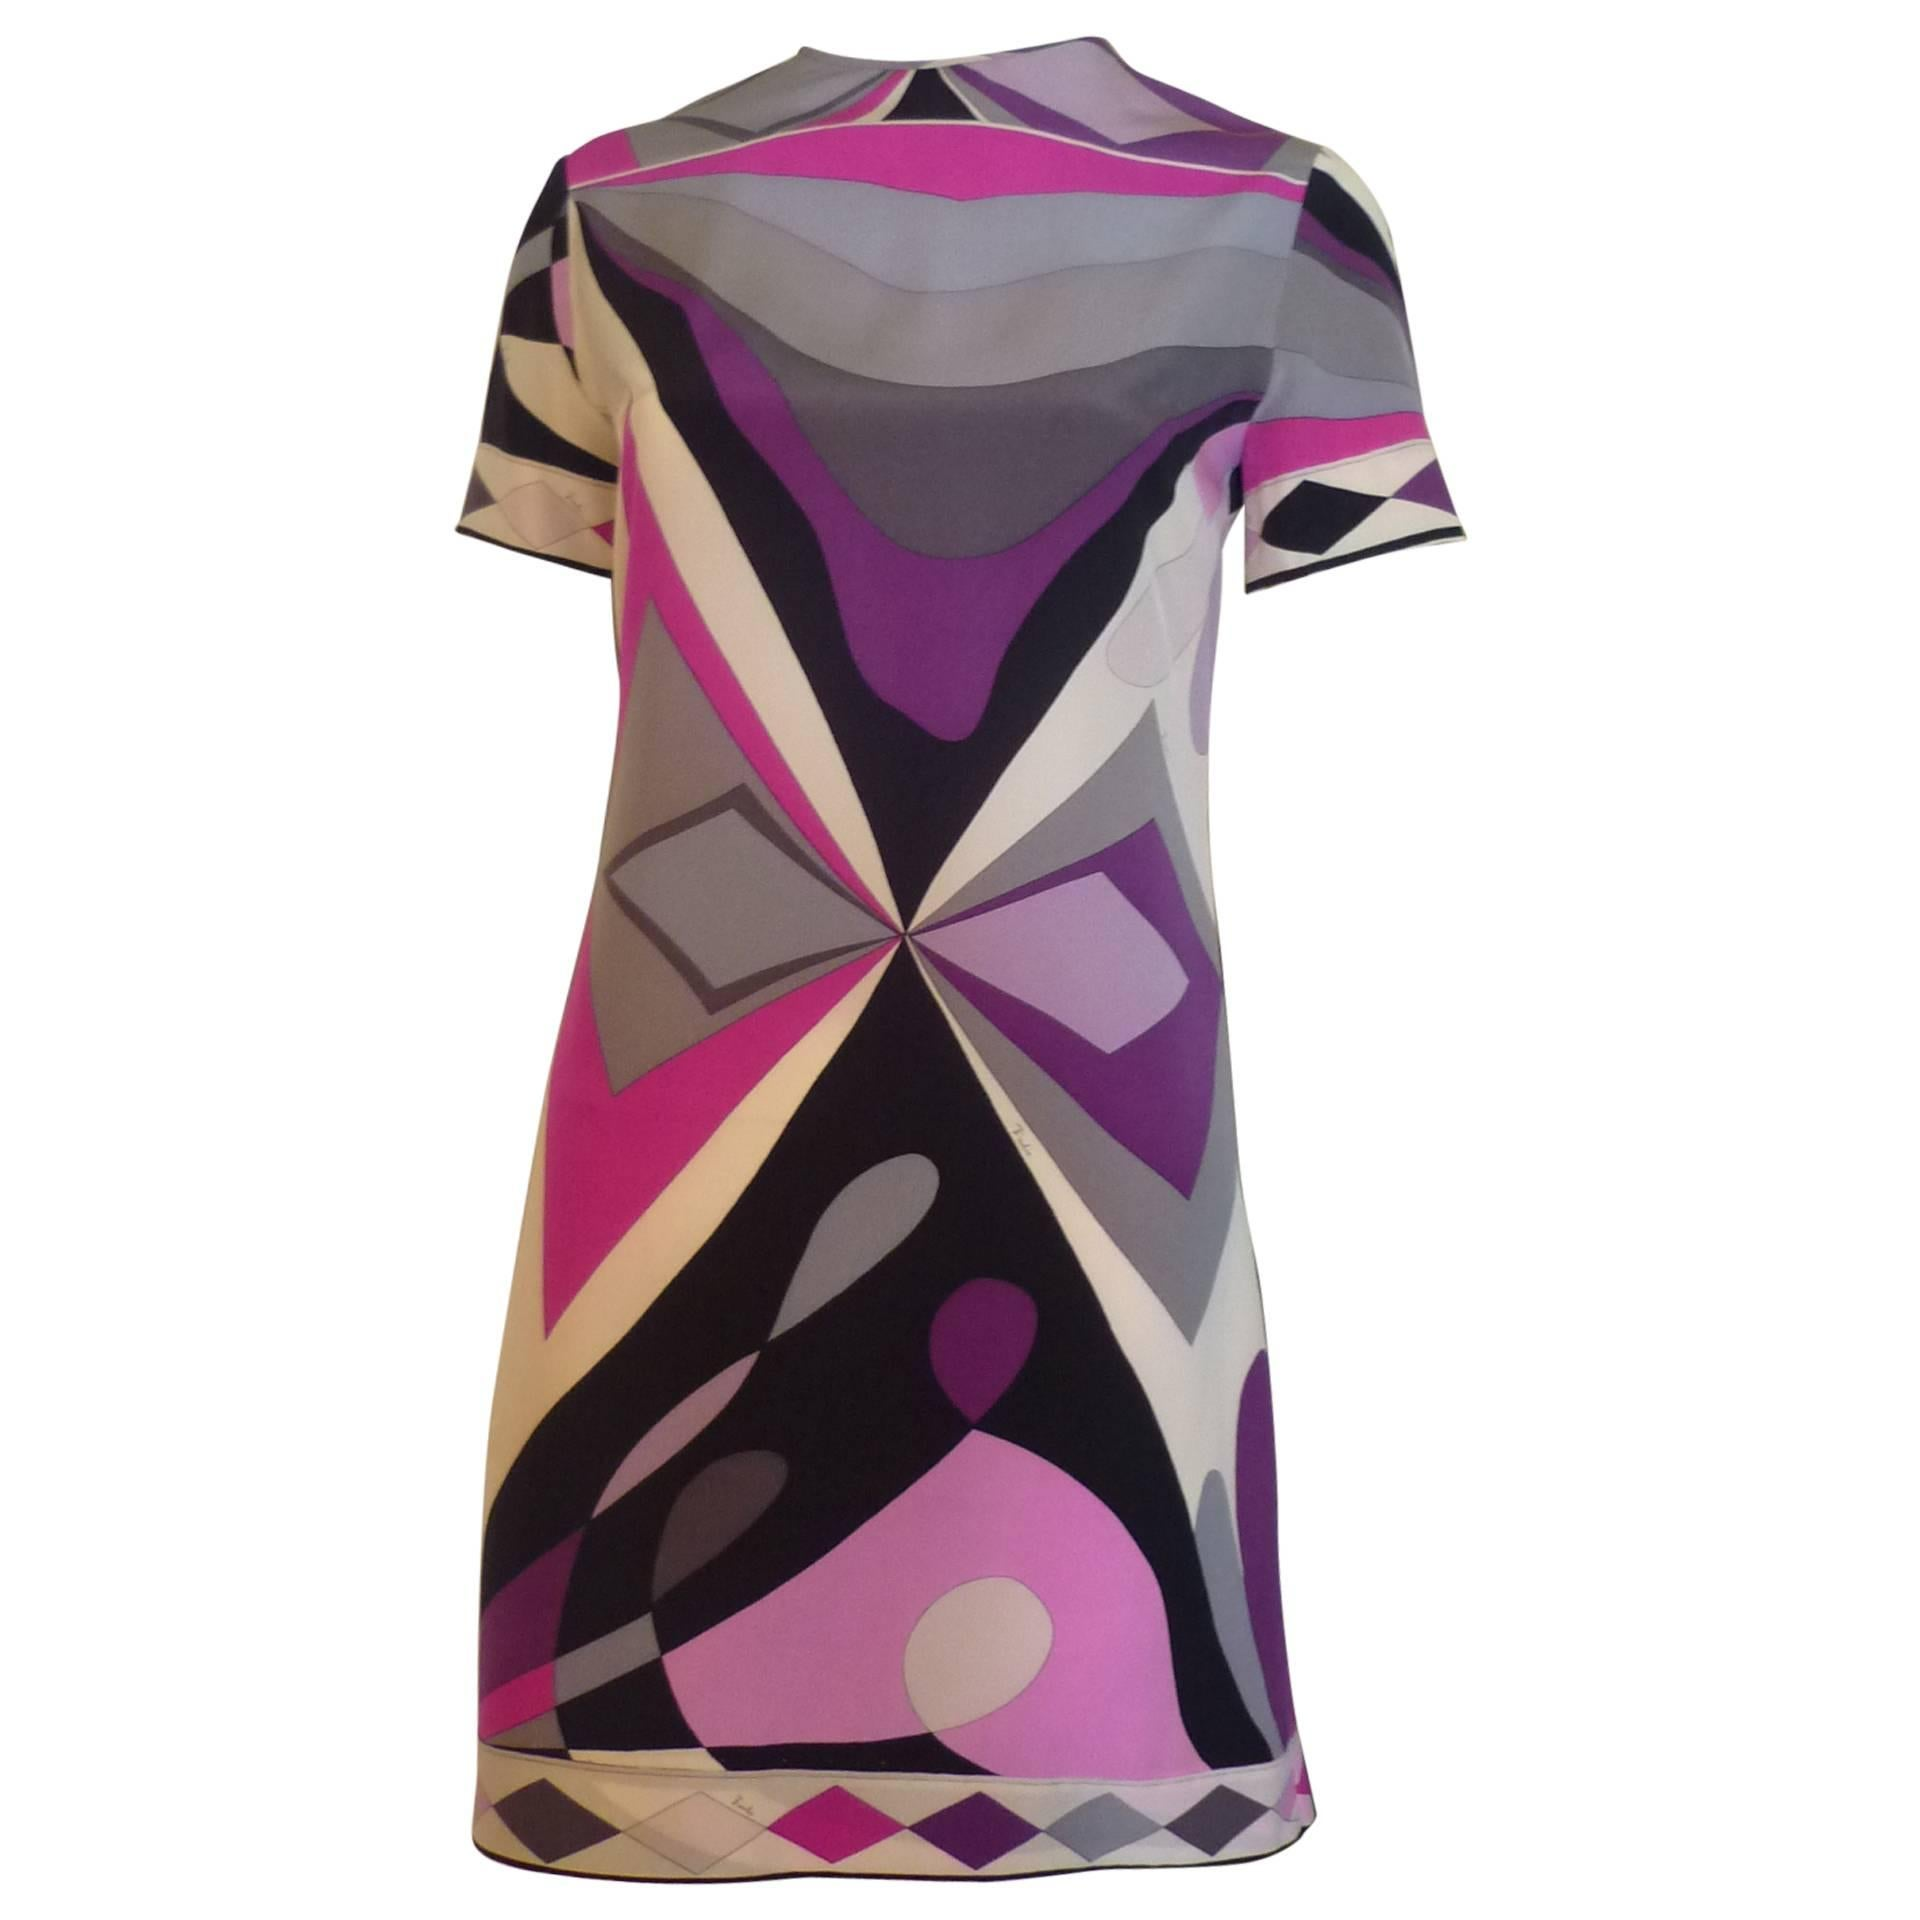 b0b008982f28 1960s Emilio Pucci Silk Mod Mini Dress at 1stdibs